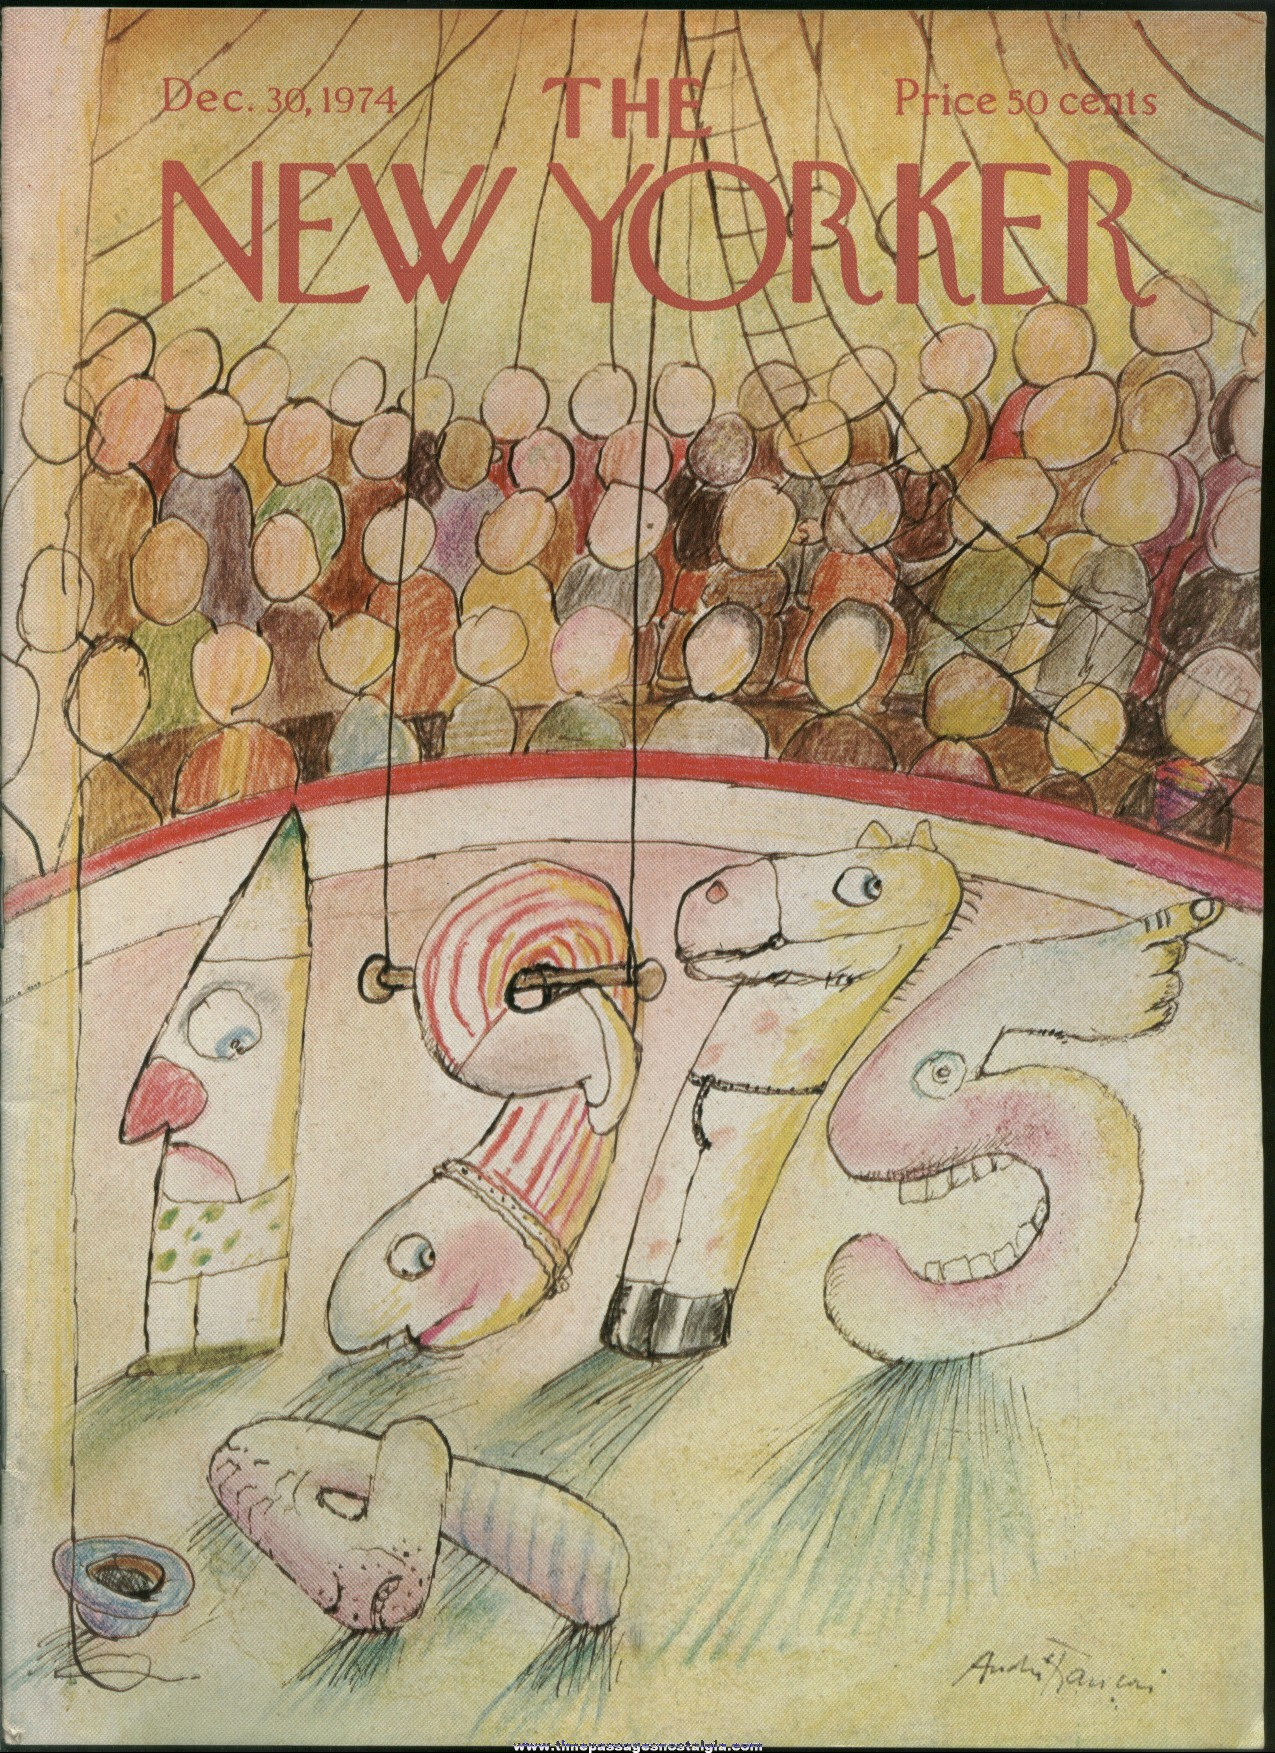 New Yorker Magazine - December 30, 1974 - Cover by Andre Francois